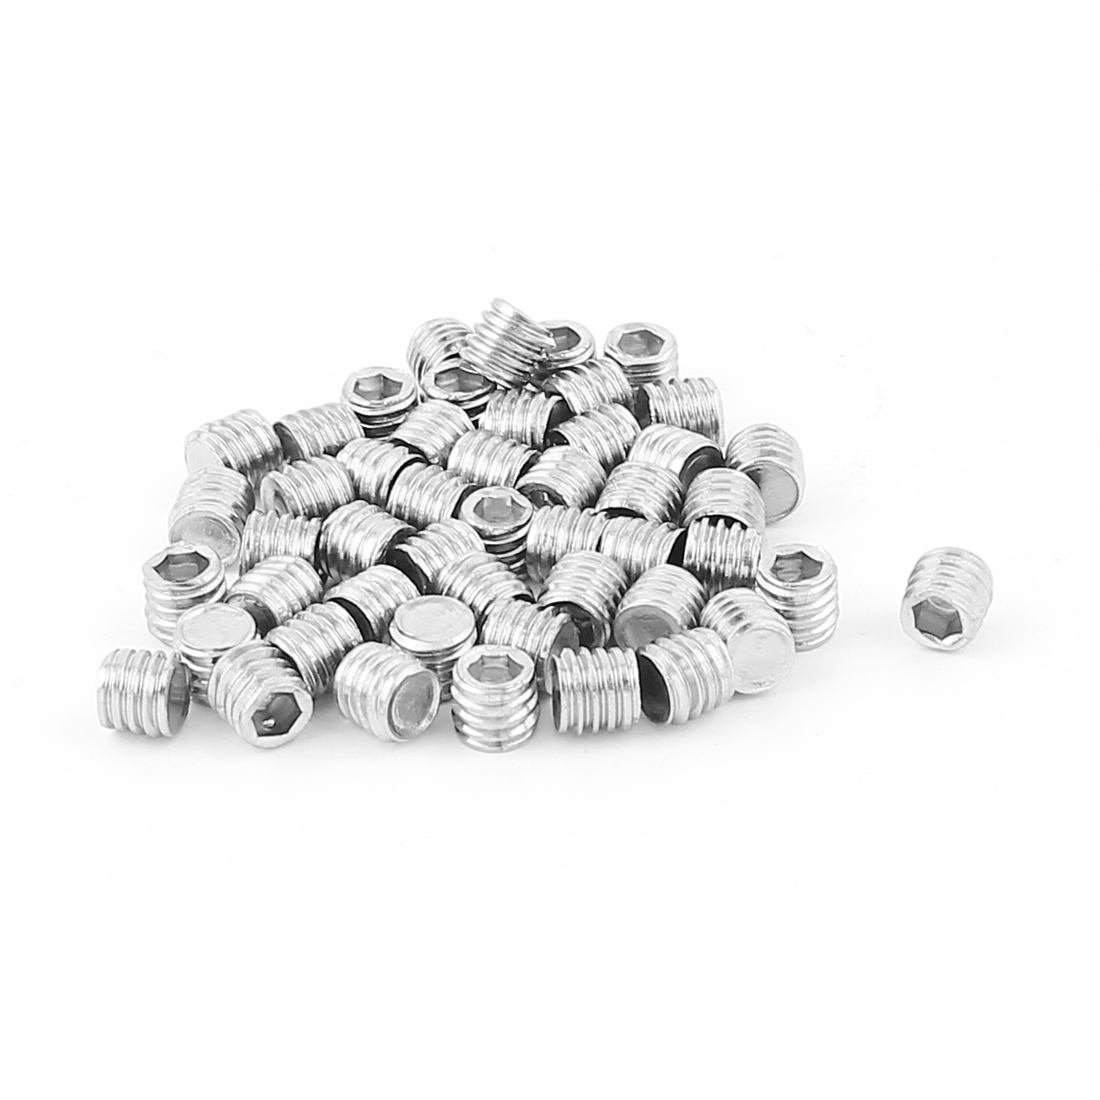 Stainless Steel M6x5mm Hex Socket Set Grub Screws Nuts Fitting 50pcs